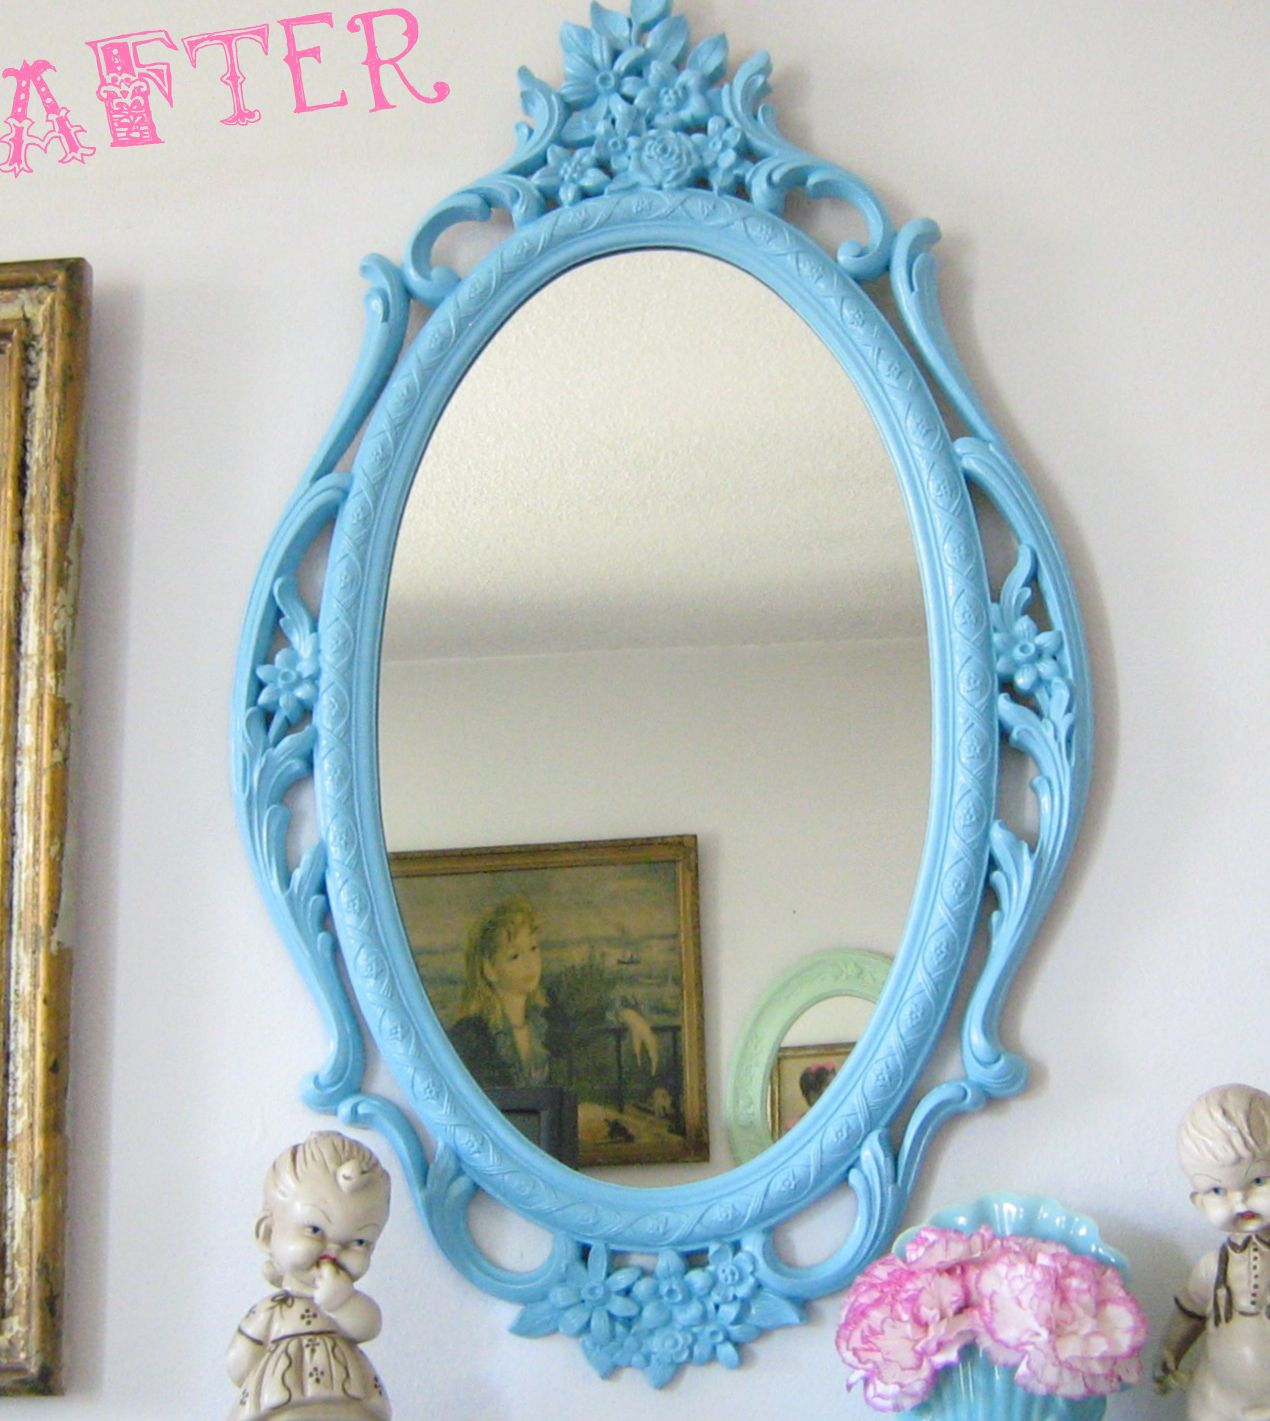 Blue frame mirror